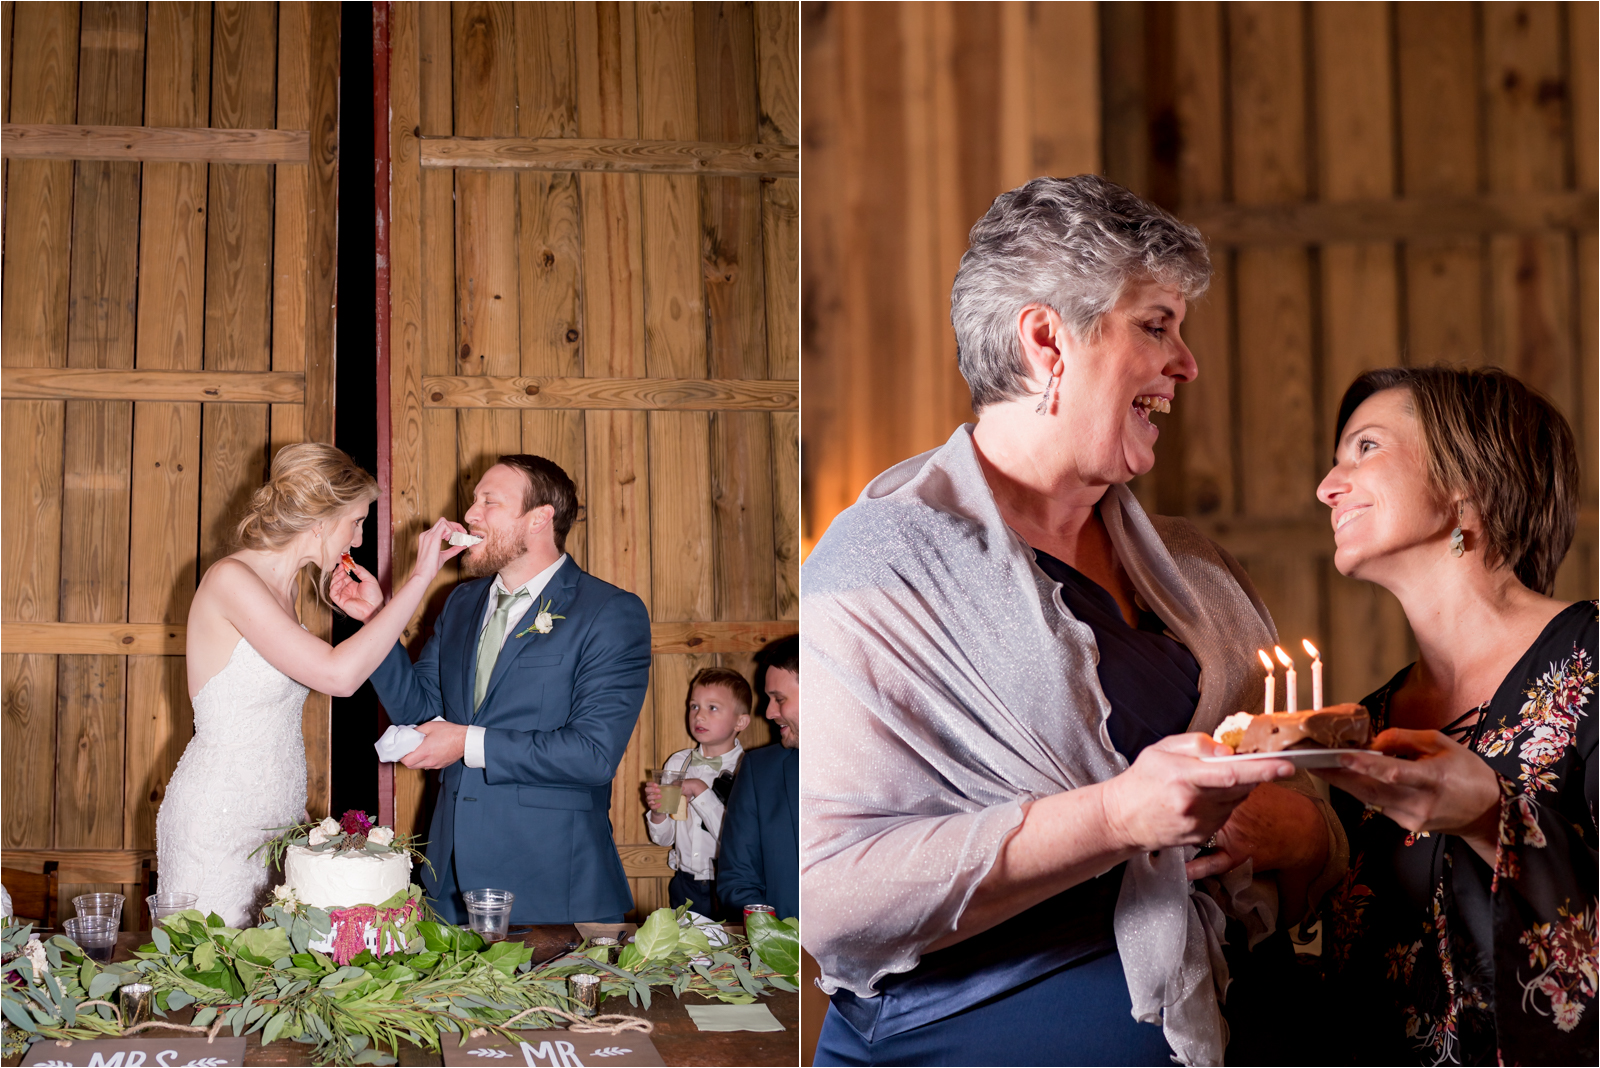 rustic wedding-rounton-farm-orange-va-virginia-rustic-barn-wedding-day-photography-jami-nosar-christian-litterst-orange-richmond-virginia-rva-rounton-farm-rustic-wedding-day-jessica-jess-capozzola-details-focus-on-joy-photography